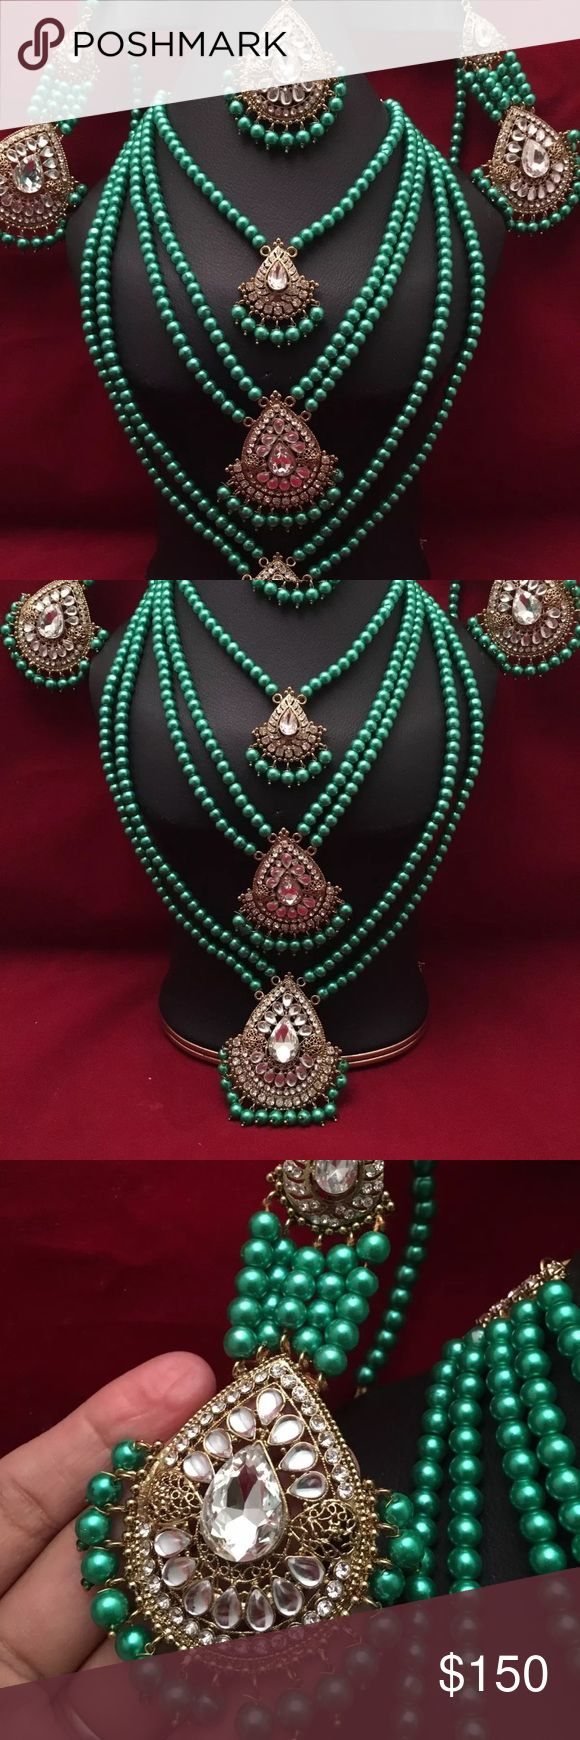 NWOT Indian bridal jewelry set New Mughal style pearl beads attached with rhinestones pendent . Set include earrings , maths Tikka and long necklace Earrings are 4.5 inches long and attached with saharas . .   Color is green like parrot green but too dark picture of Beads in hand is exact color .  Picture took in different lights to show you the exact colors . Very beautiful in front .  Please ask any question before bidding all sales are final no return accepted.  Thank you Jewelry…